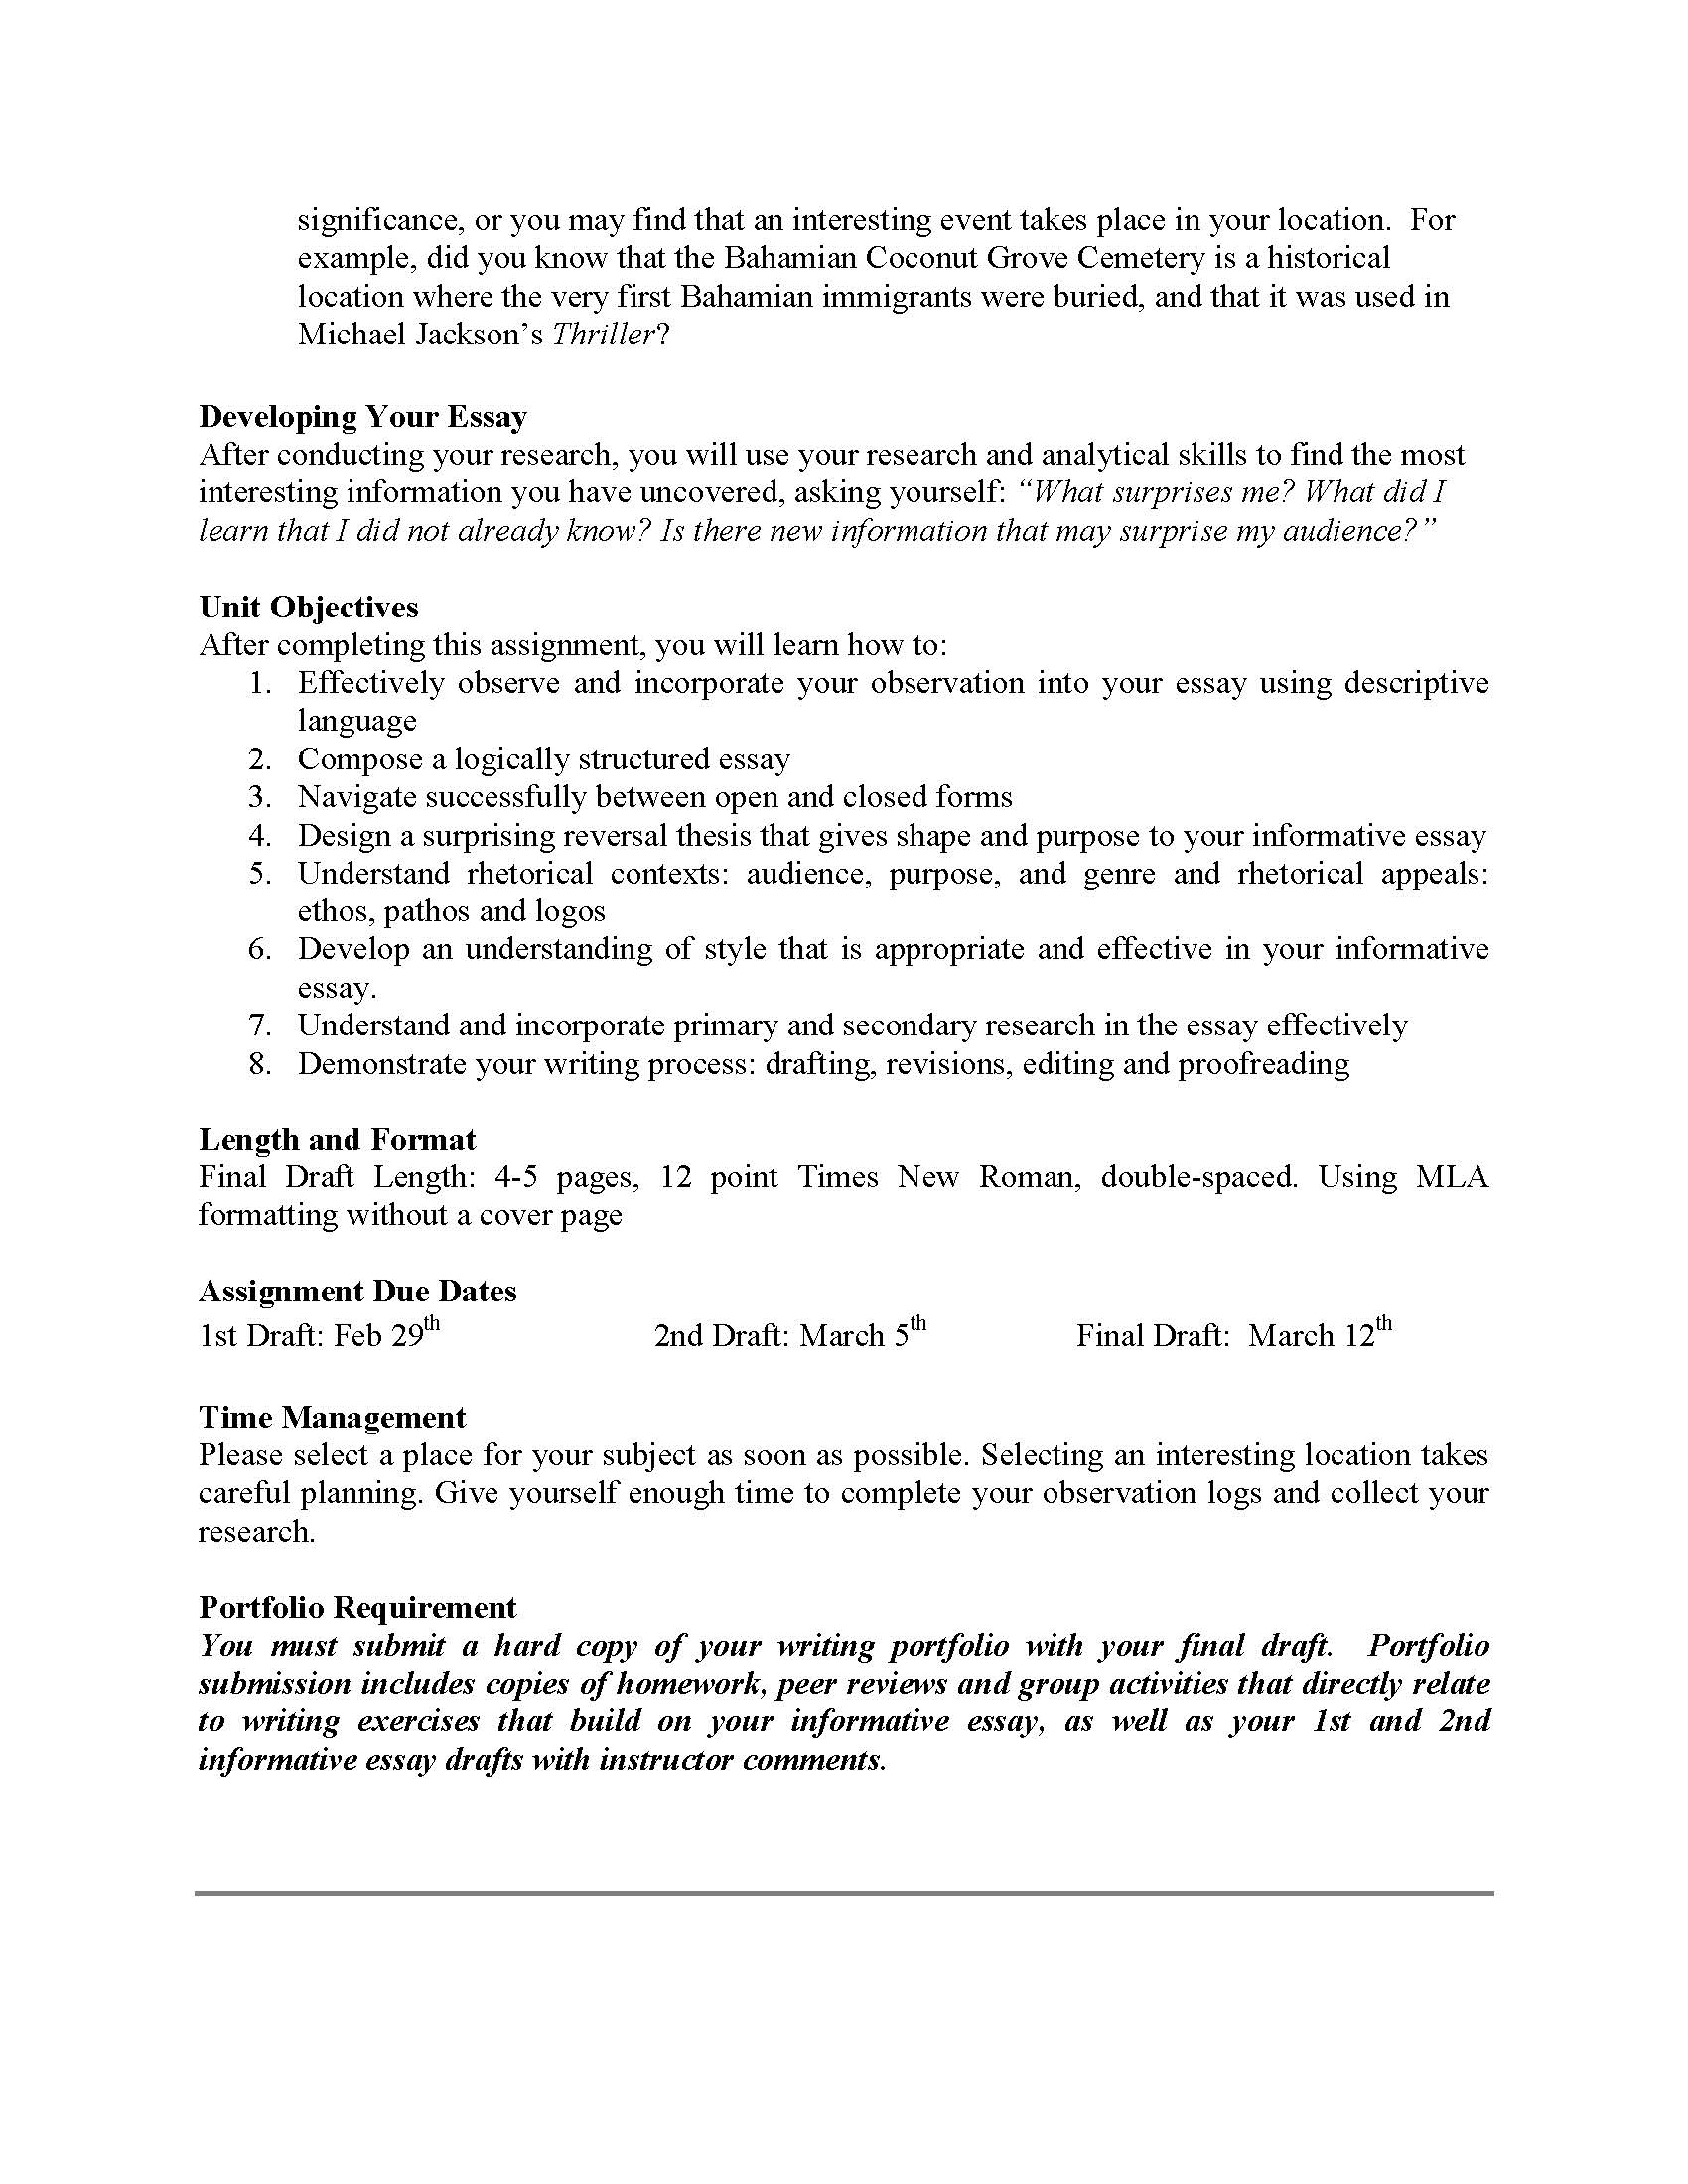 011 Informative Essay Unit Assignment Page 2 Example Outstanding Definition Full